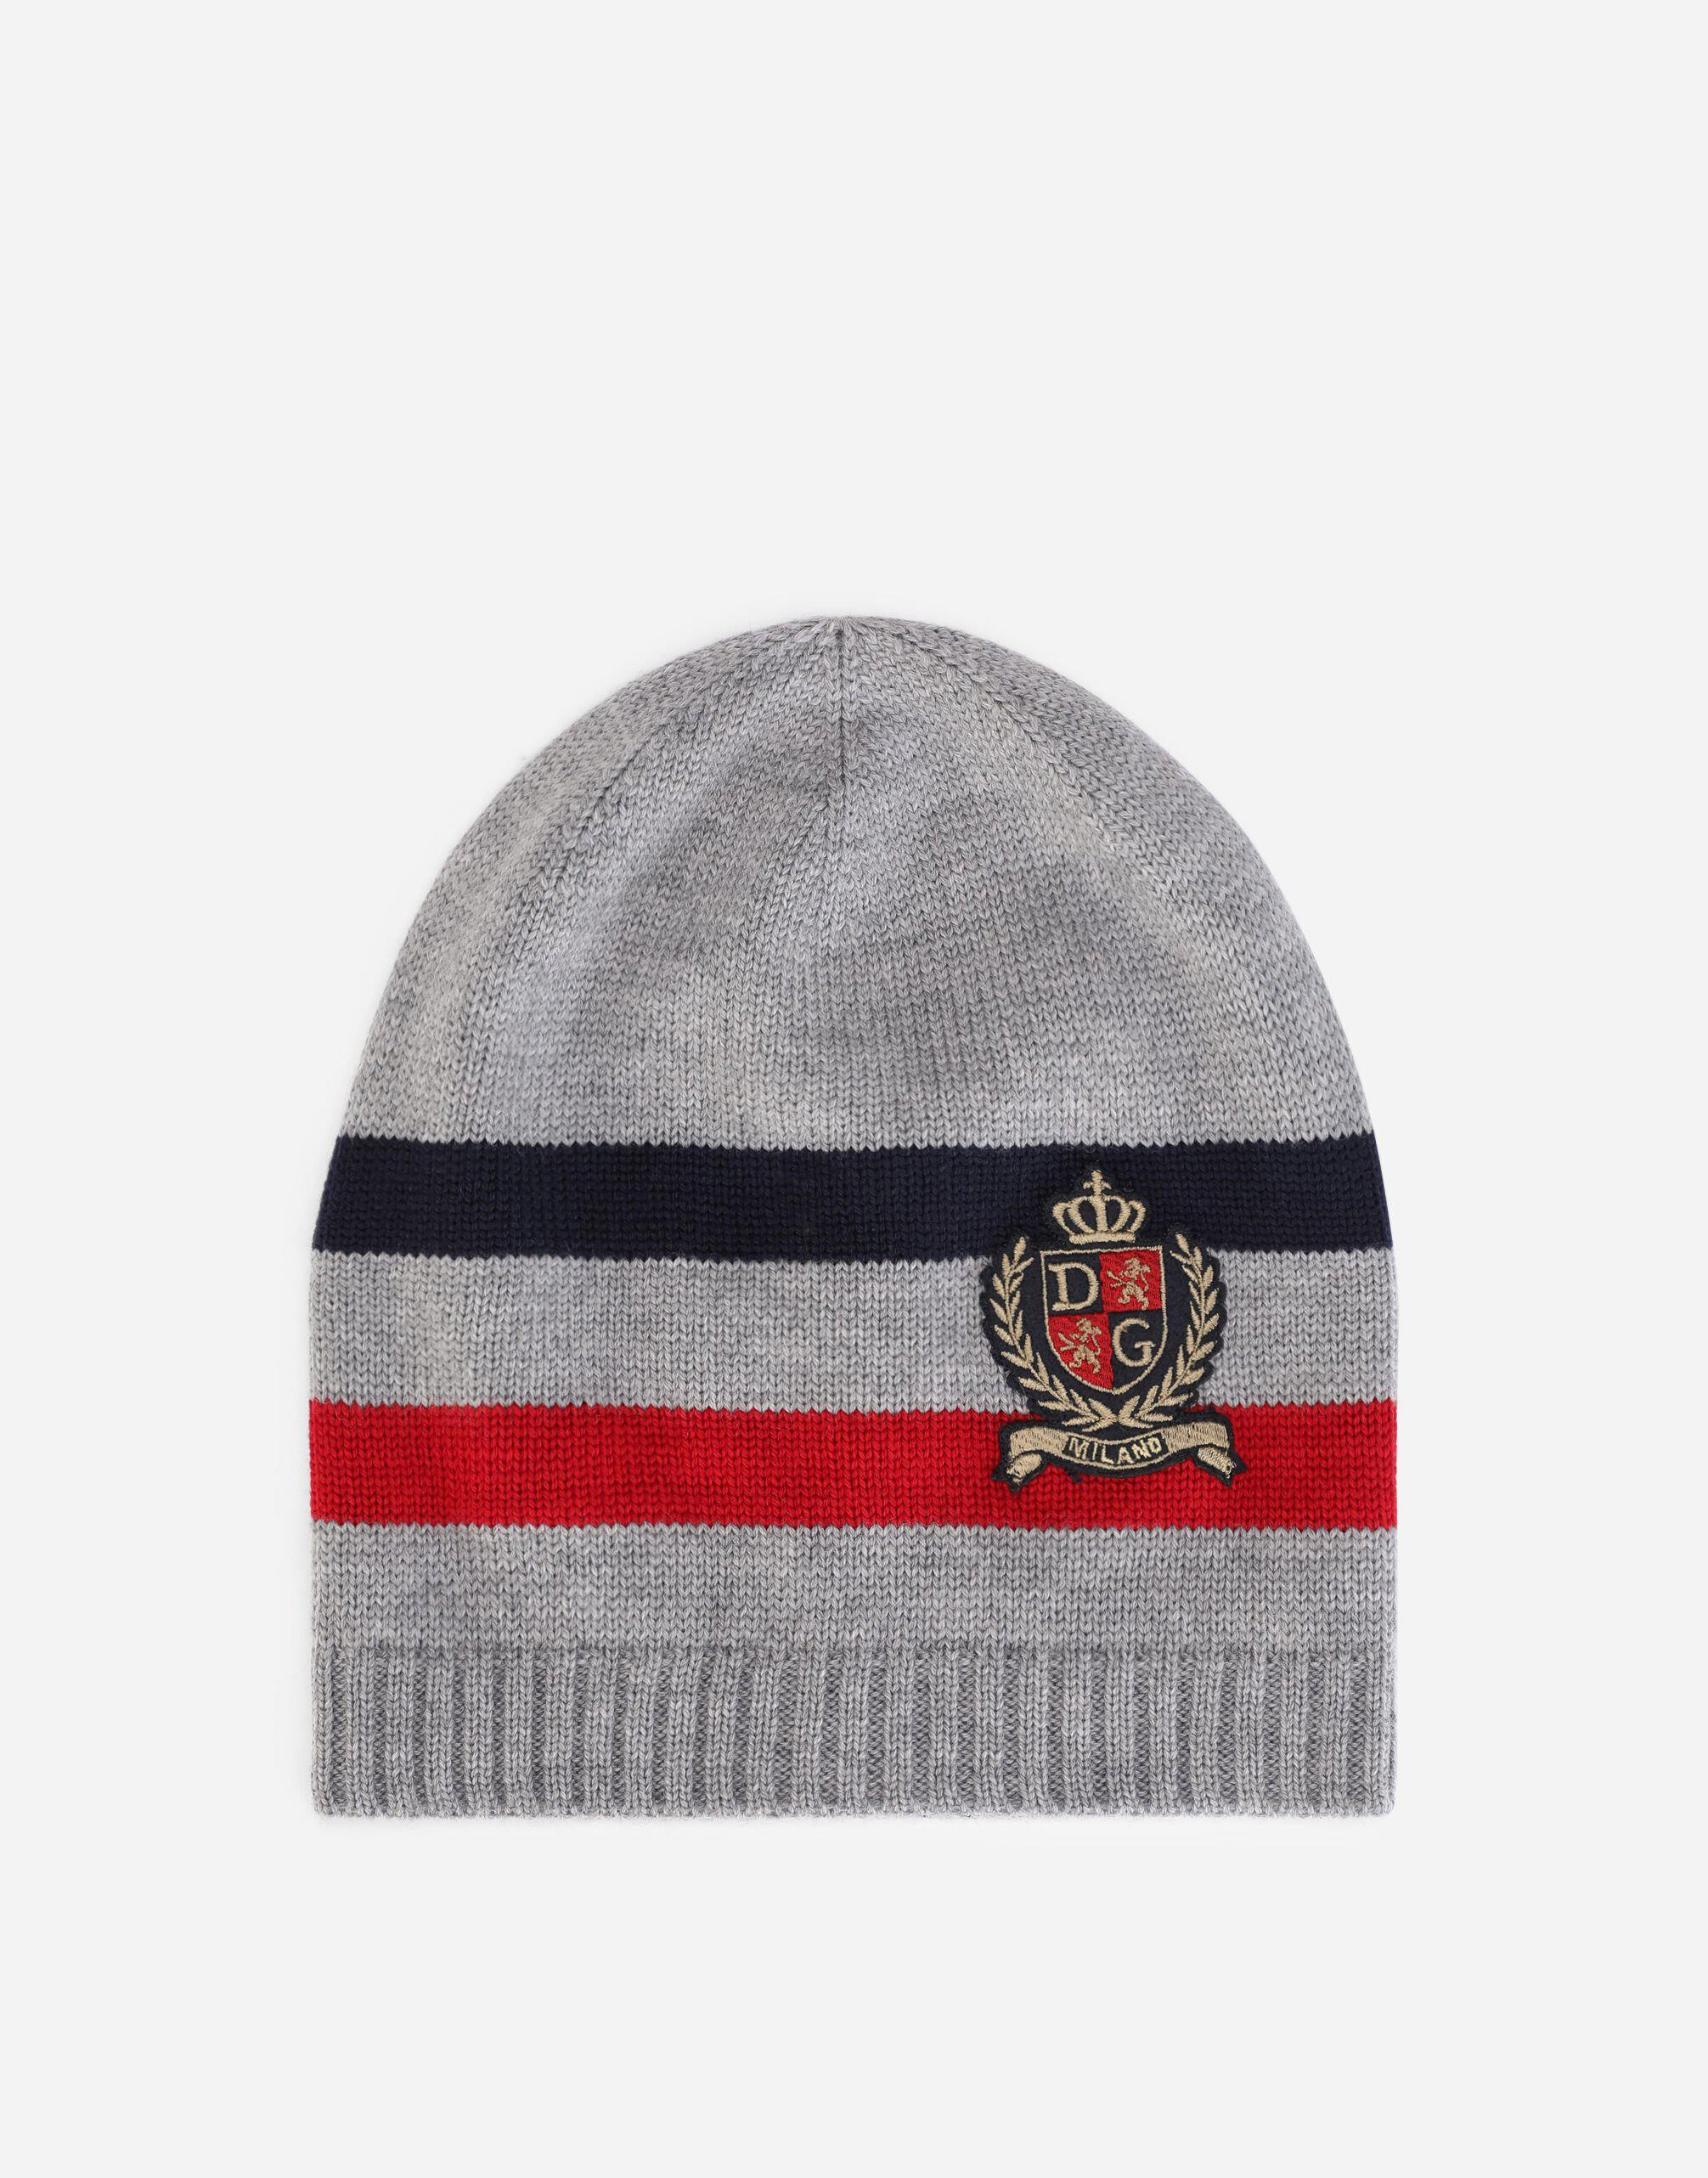 Knit hat with DG crown logo